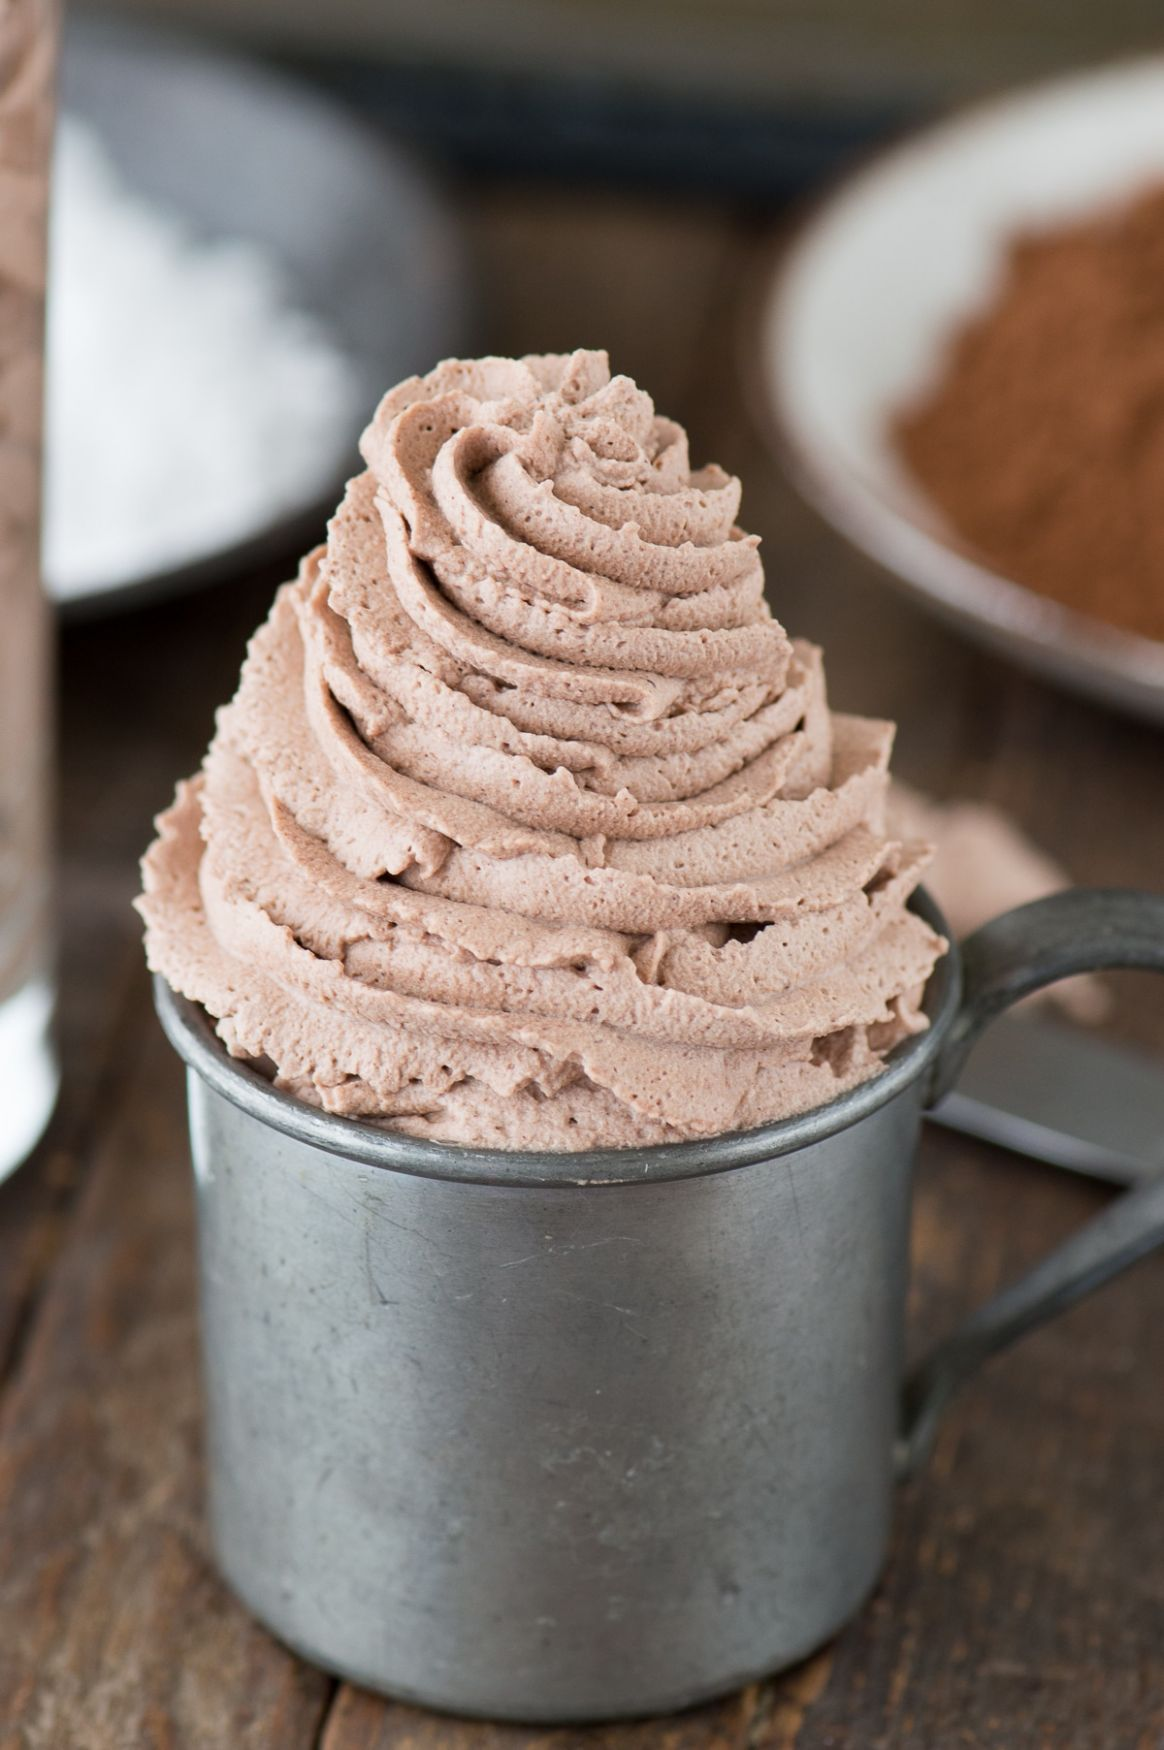 Chocolate Whipped Cream | The First Year